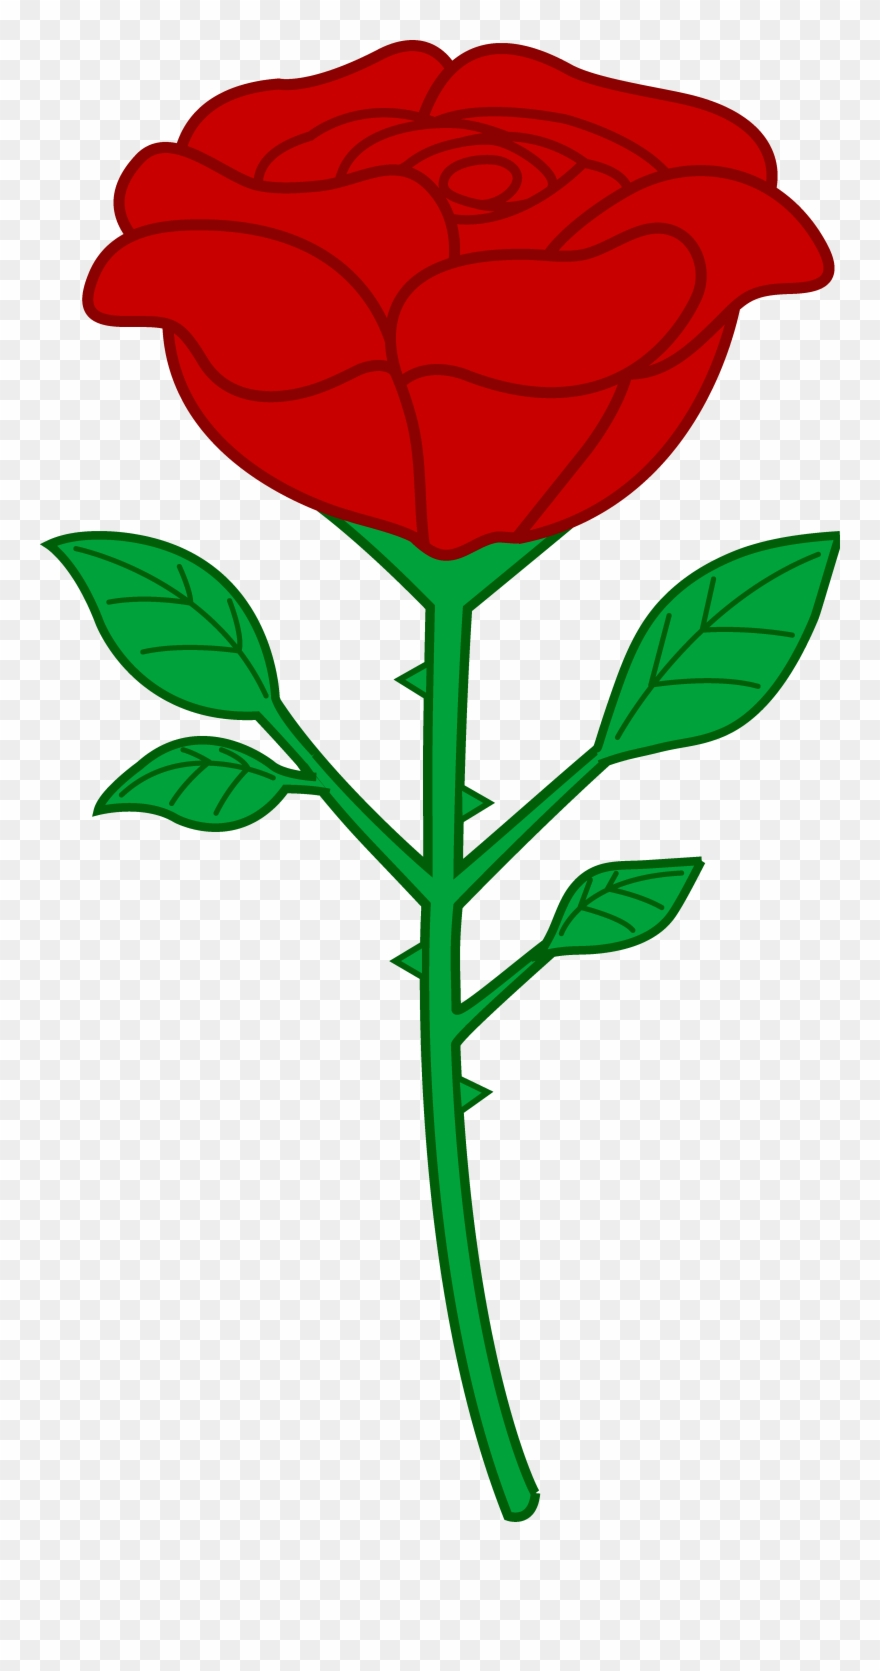 Clipart rose thorn. Clip art roses with